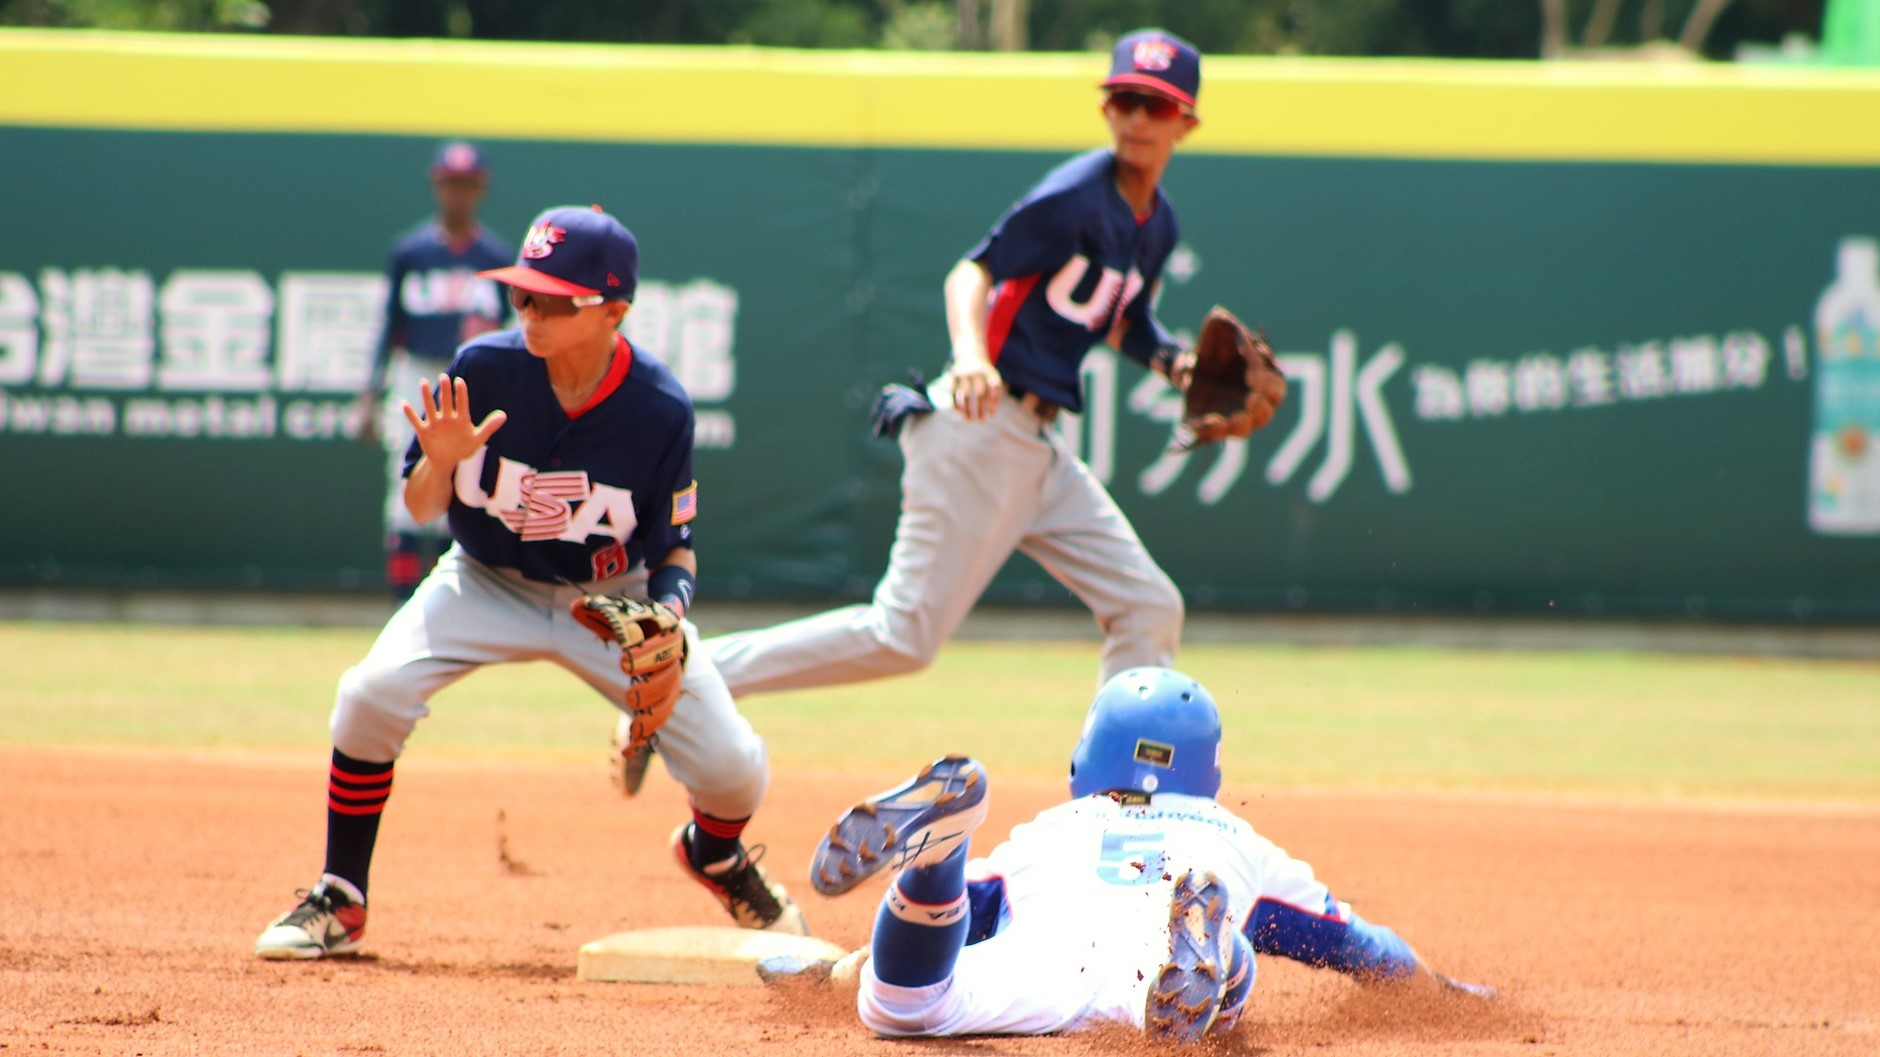 Bryce Nixon defends USA second base, Korea's Doo Donghyeon slides in